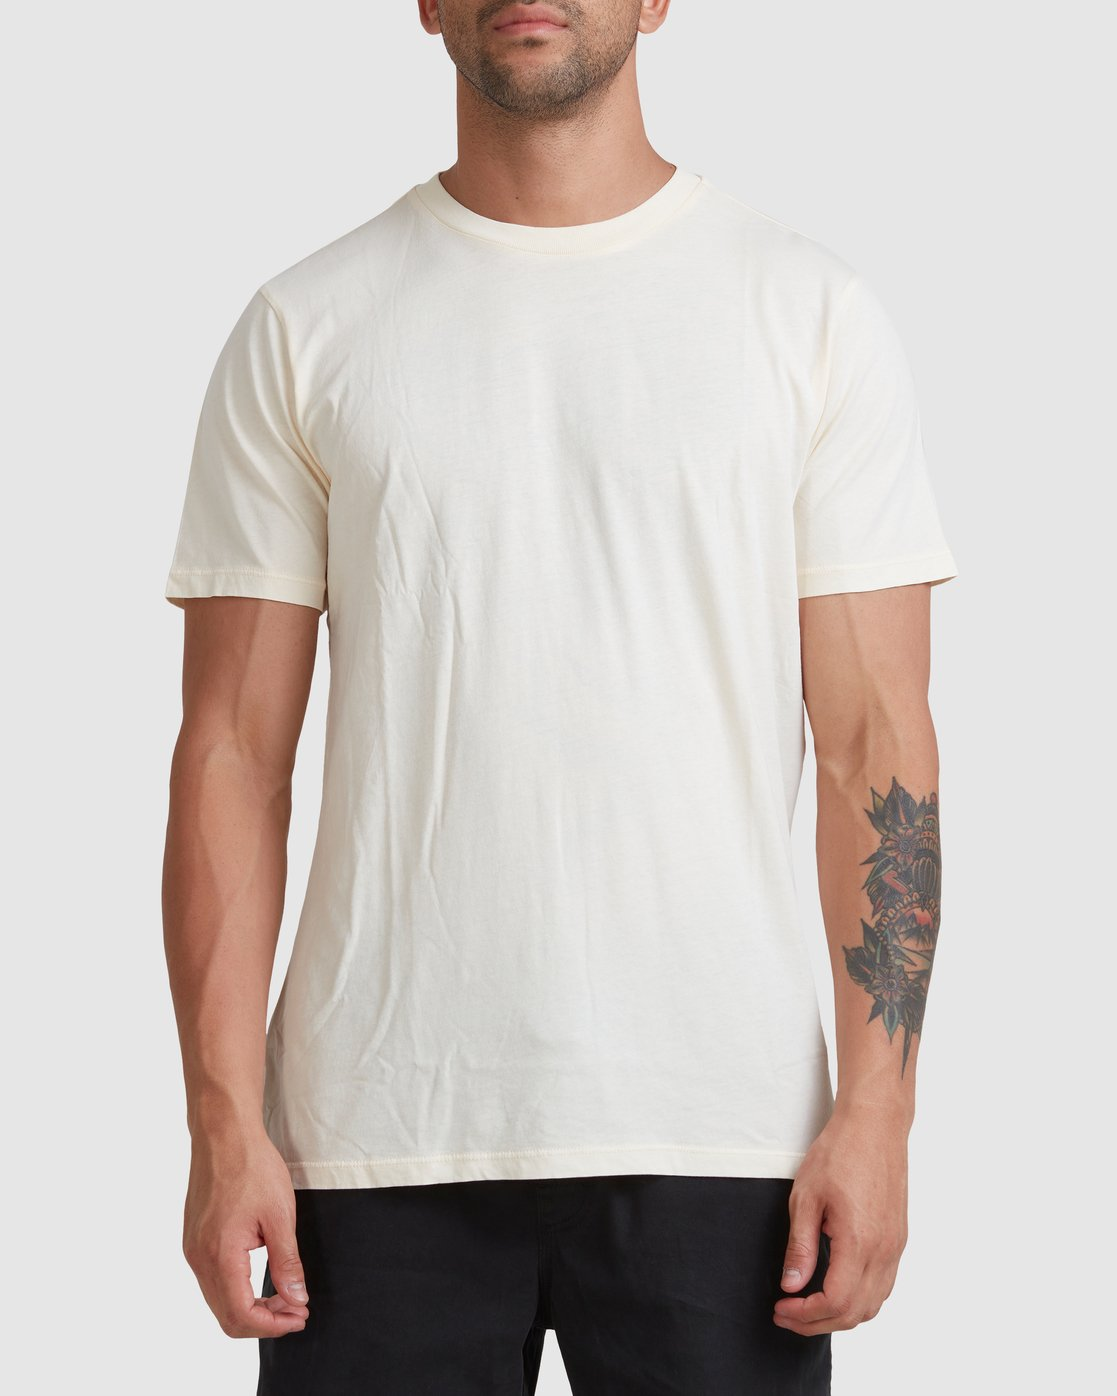 0 Rvca Washed Short Sleeve Tee White R105050 RVCA